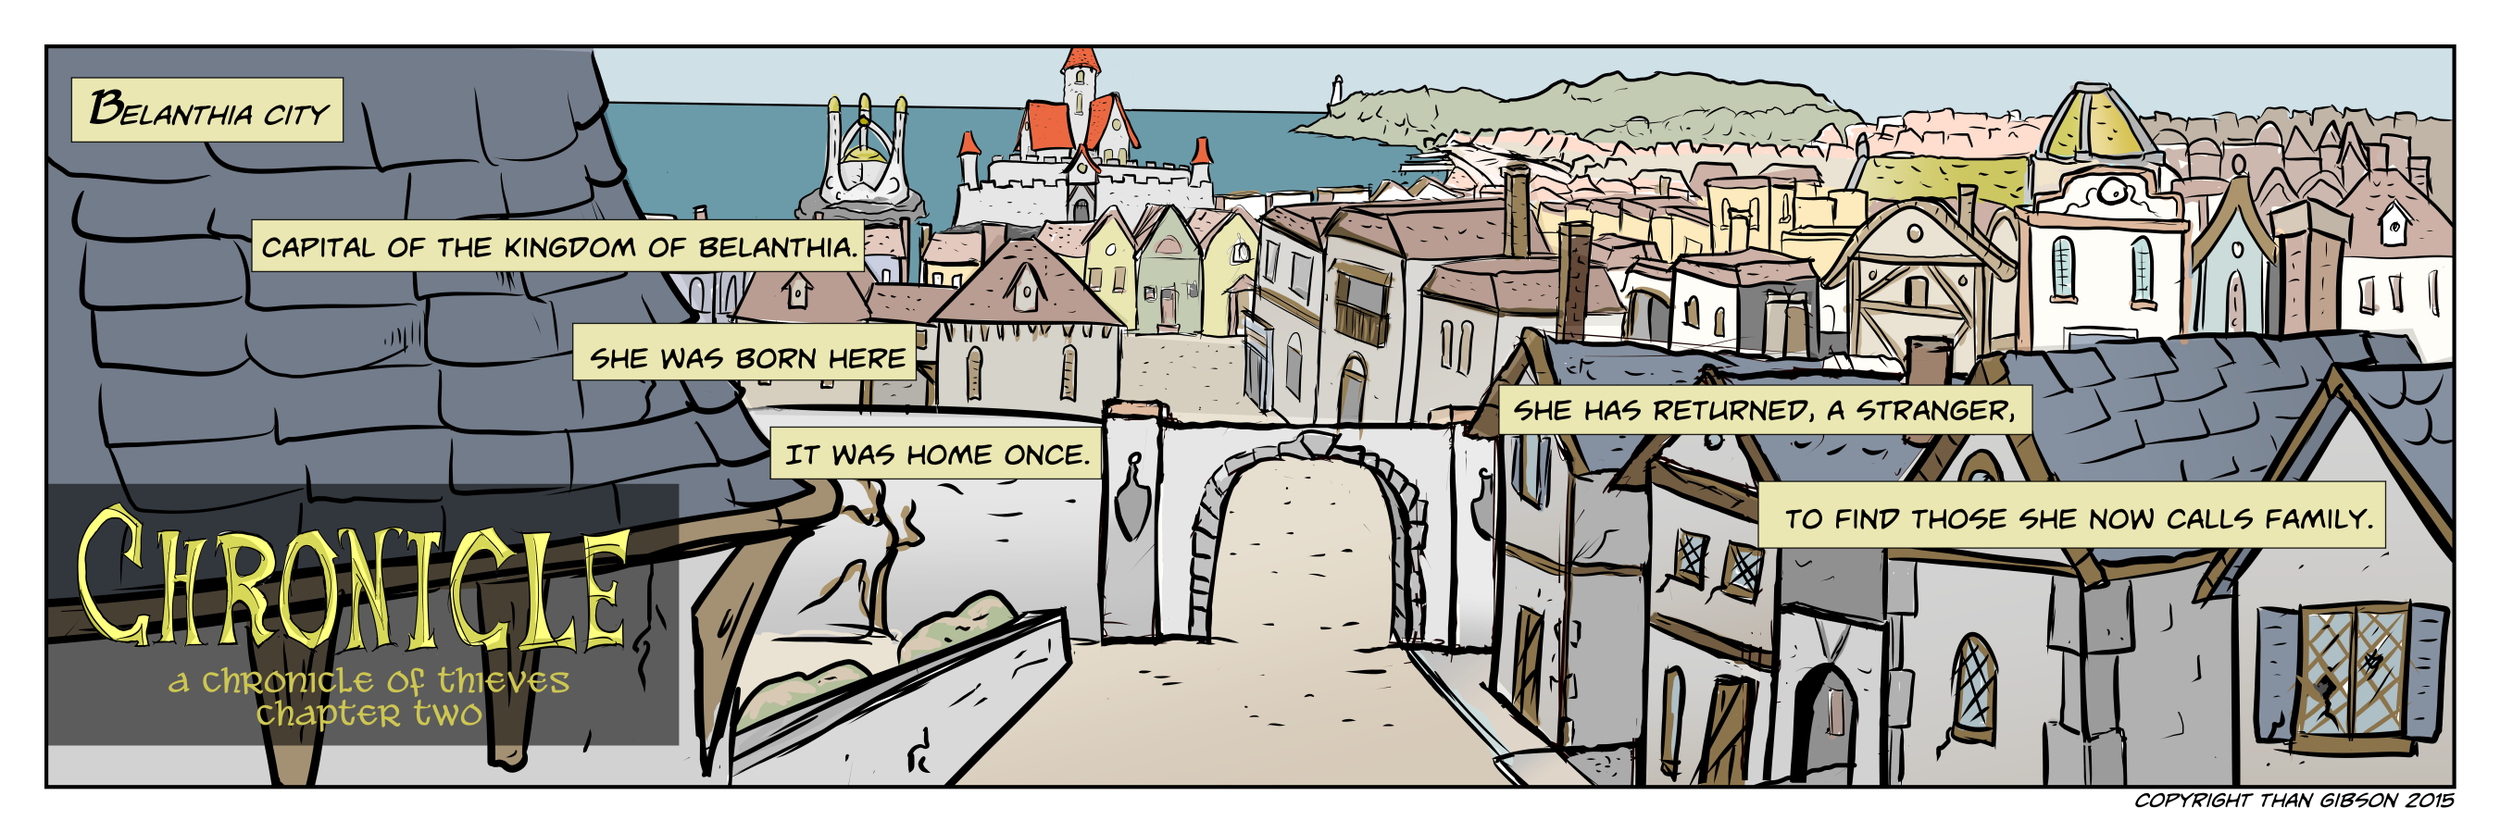 A Chronicle of Thieves -Chapter 2, Strip 03-Click the image for a larger view!